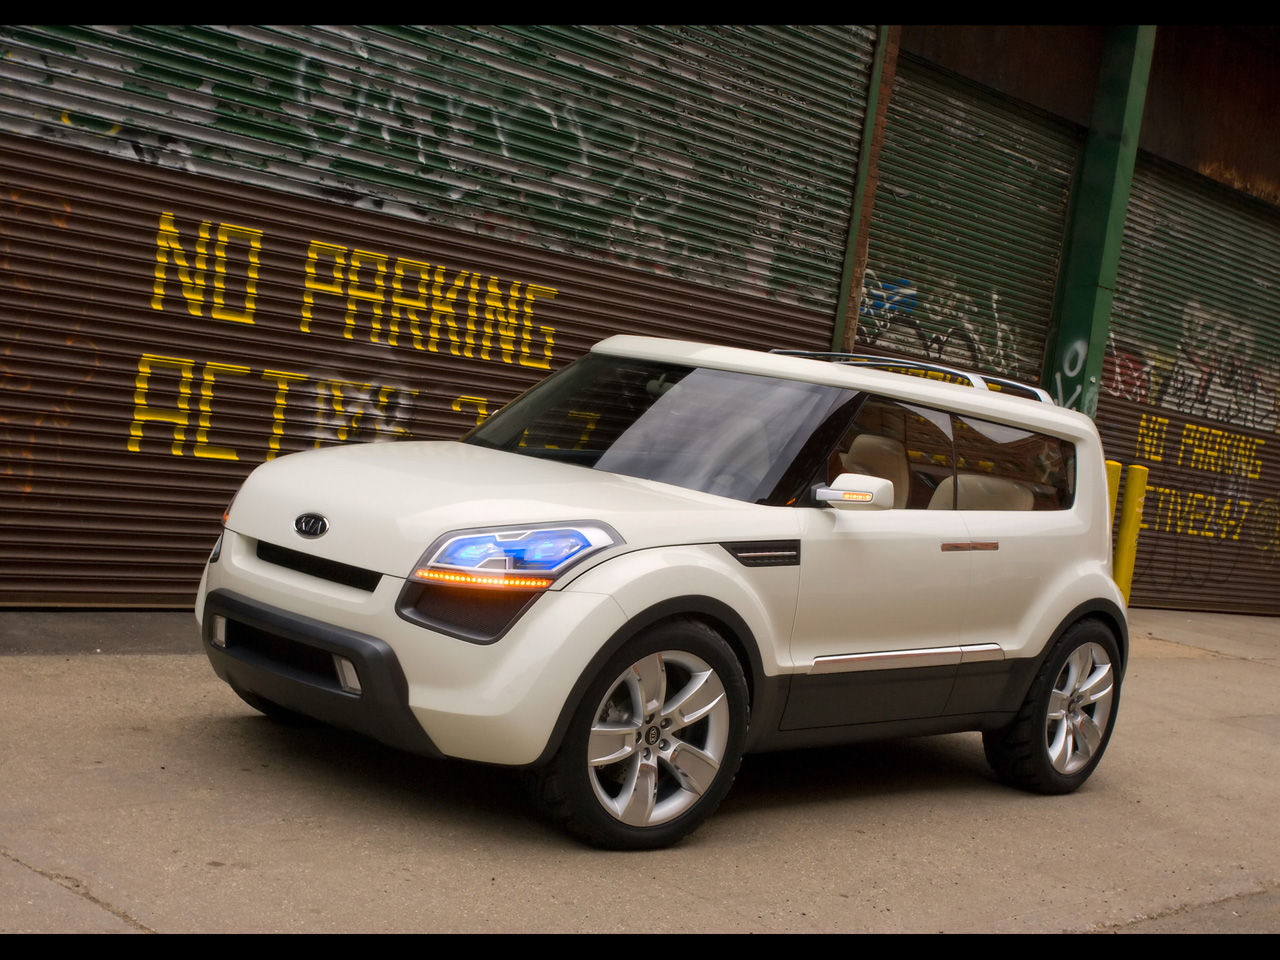 kia soul 2011 review and specification new cars tuning specs photos prices. Black Bedroom Furniture Sets. Home Design Ideas